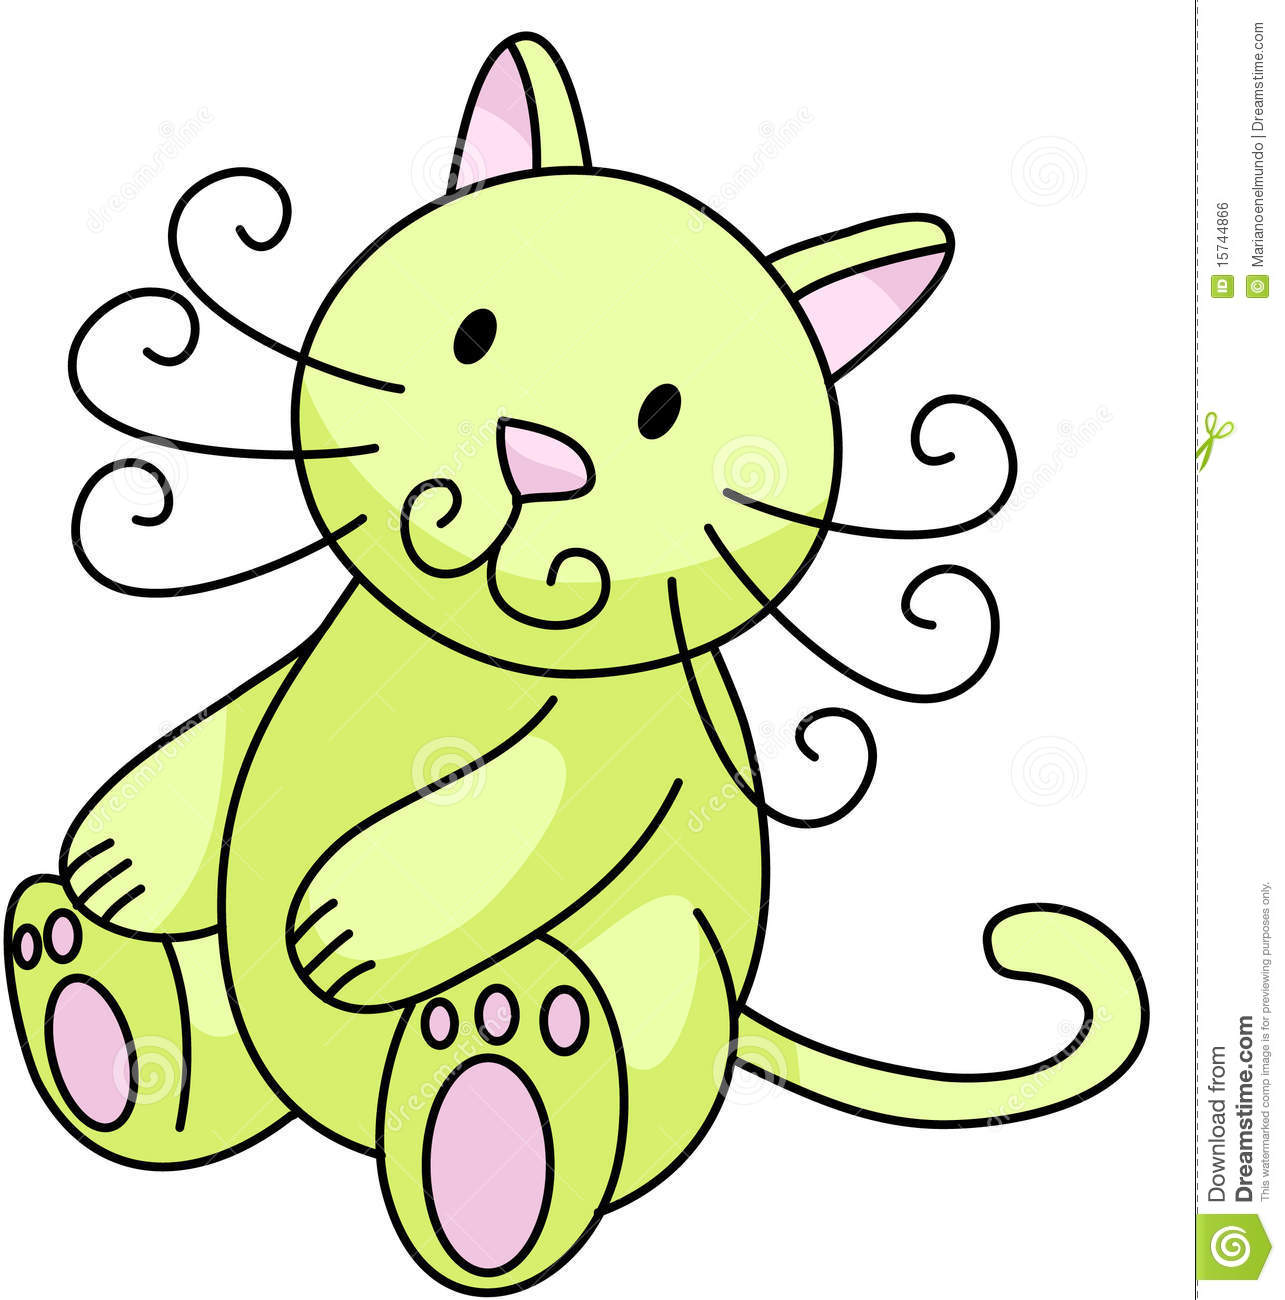 Whiskers clipart Clipart Clipart whisker%20clipart Images Free